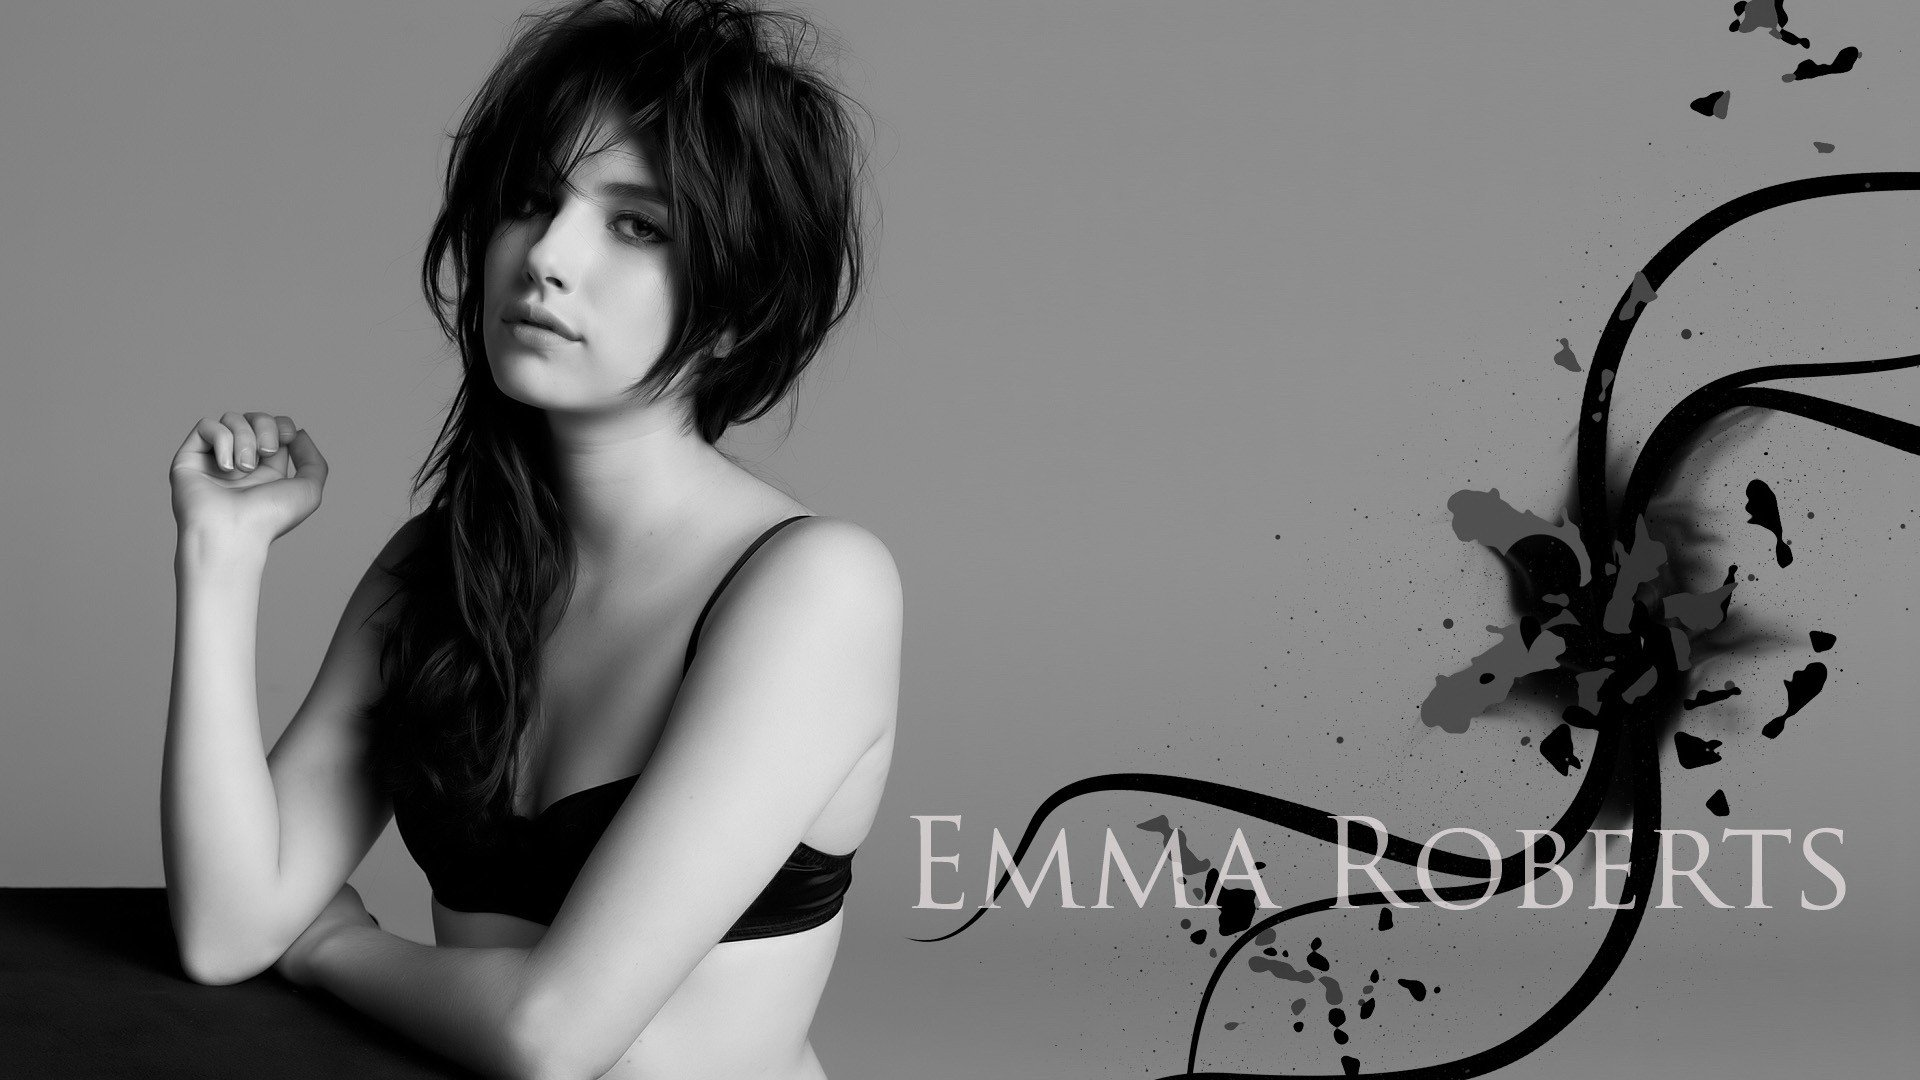 121 emma roberts hd wallpapers | background images - wallpaper abyss